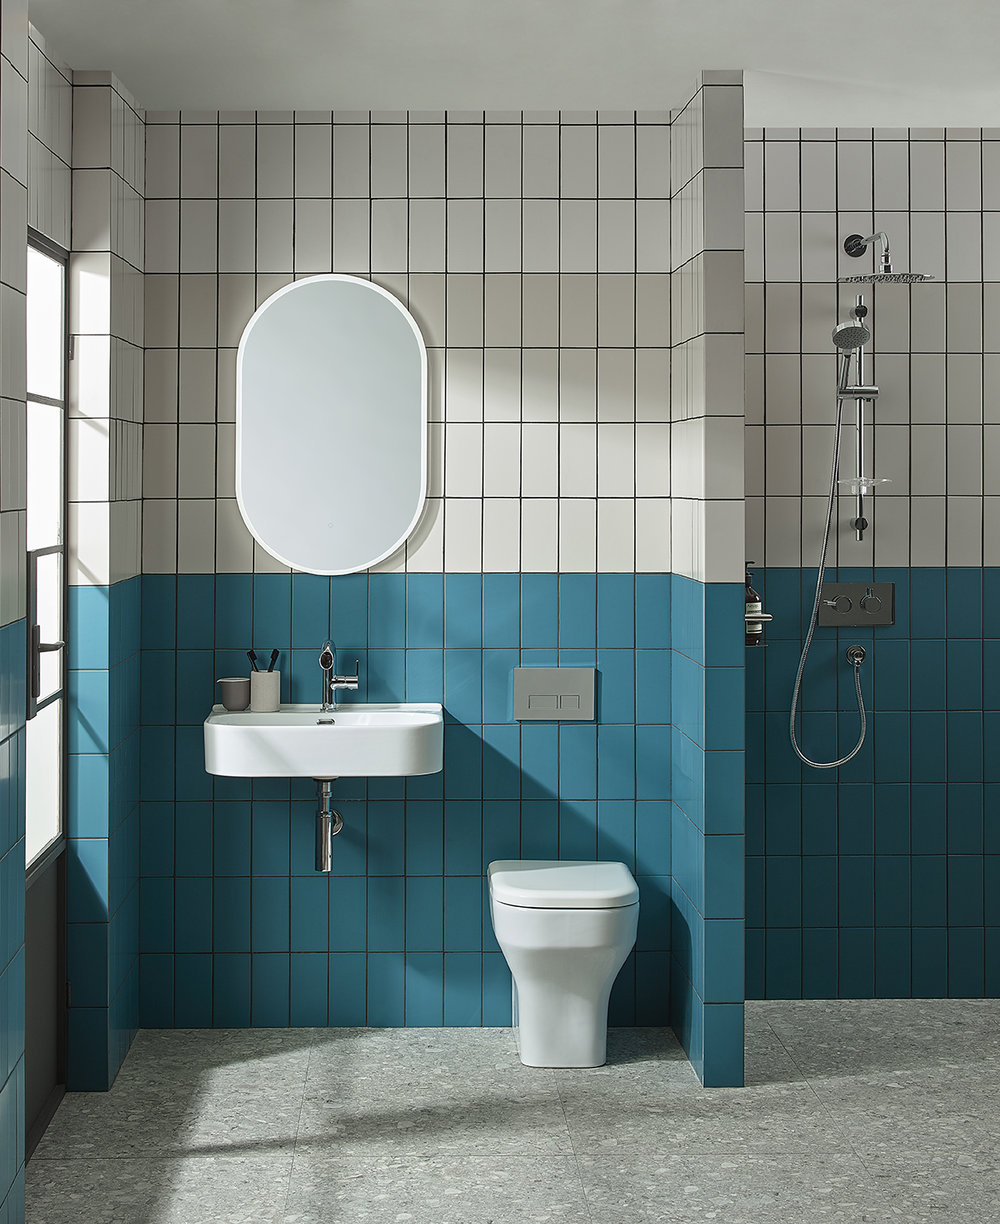 Out with the old - ...in with the new. Coloured grout makes for a bold statement, quickly reviving a drab, dull bathroom.